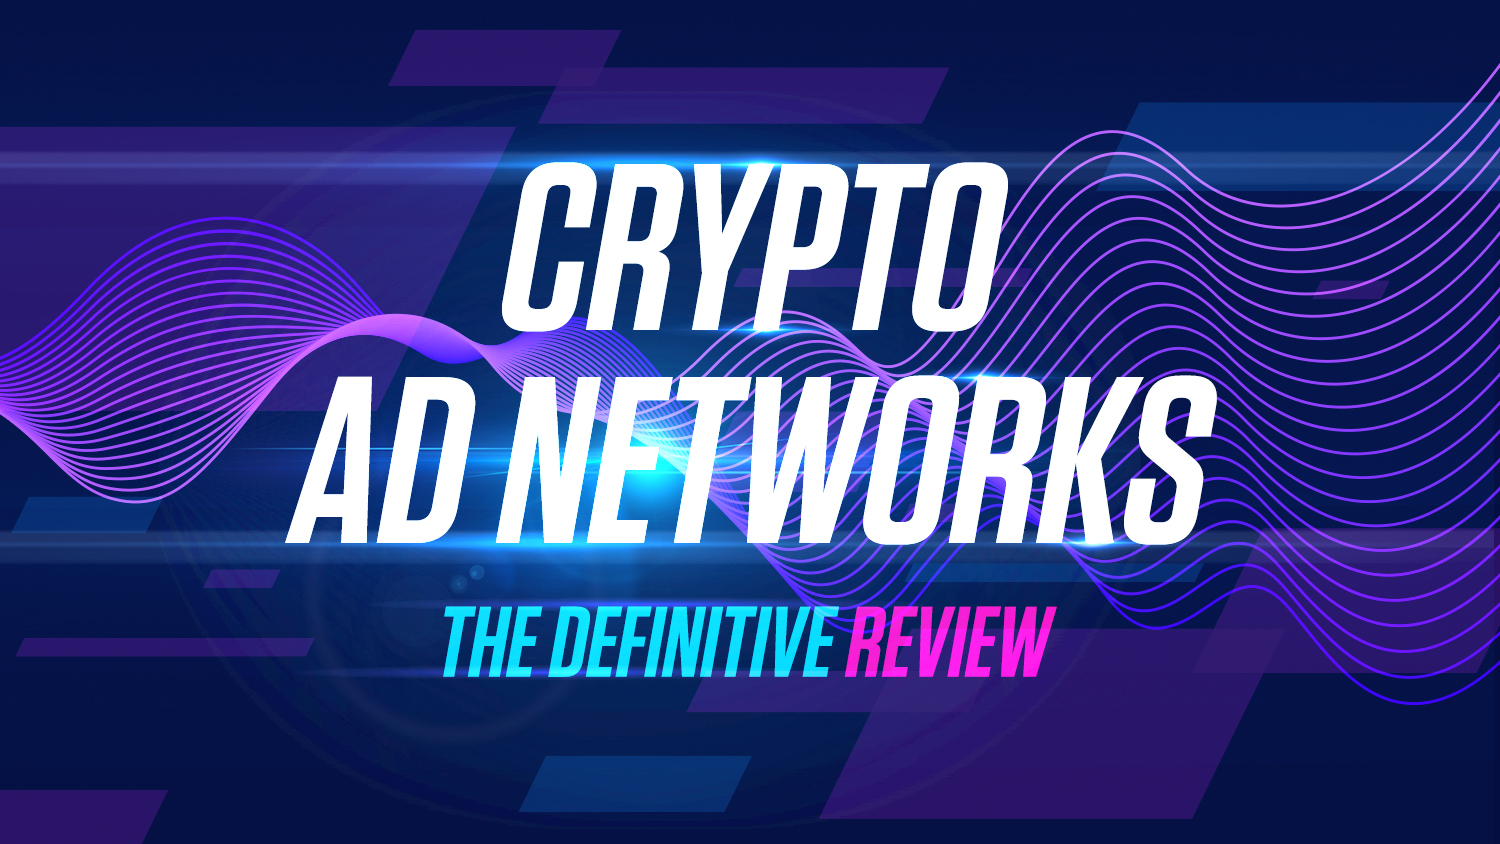 Top Crypto Advertising Networks You Should Know Review